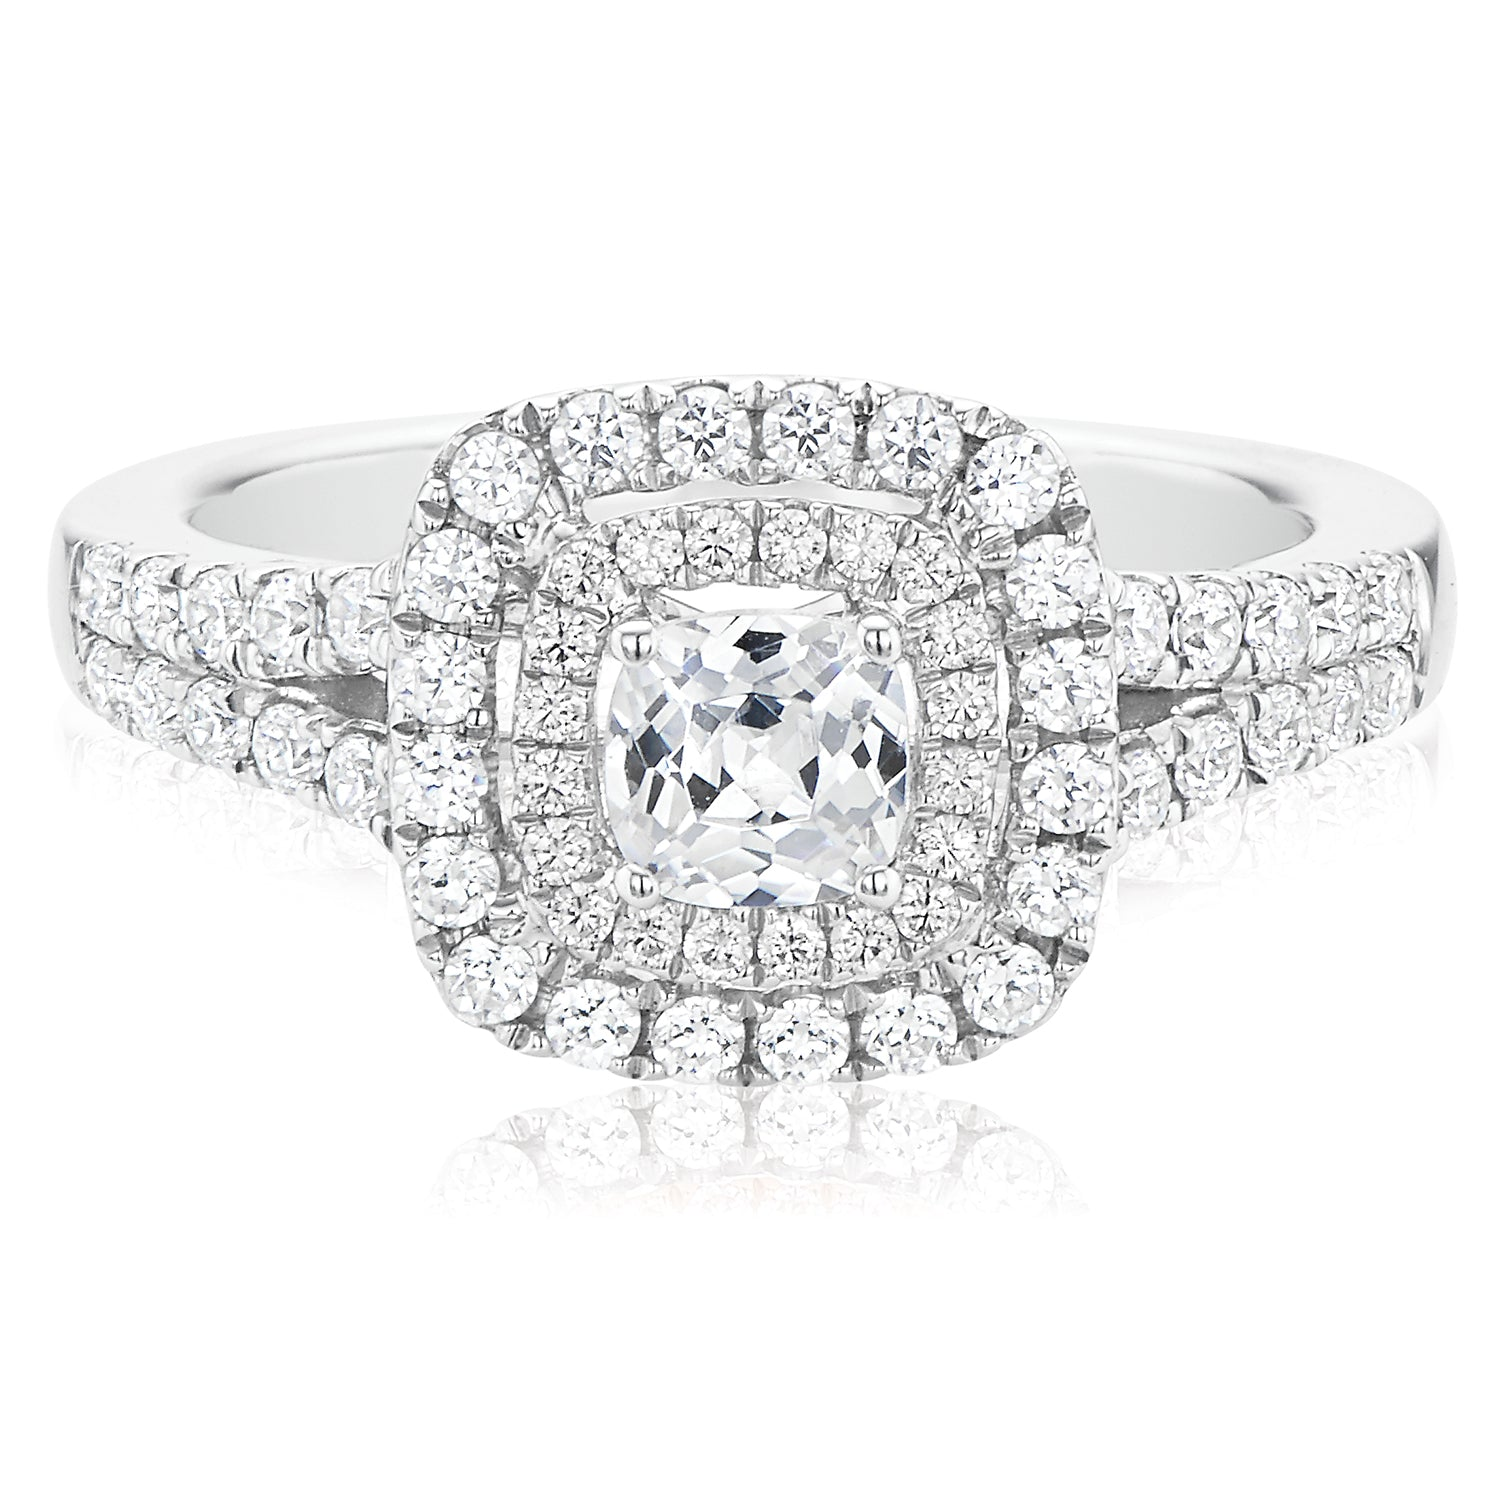 Rand 18ct White Gold Cushion Cut with 1 CARAT tw of Diamonds